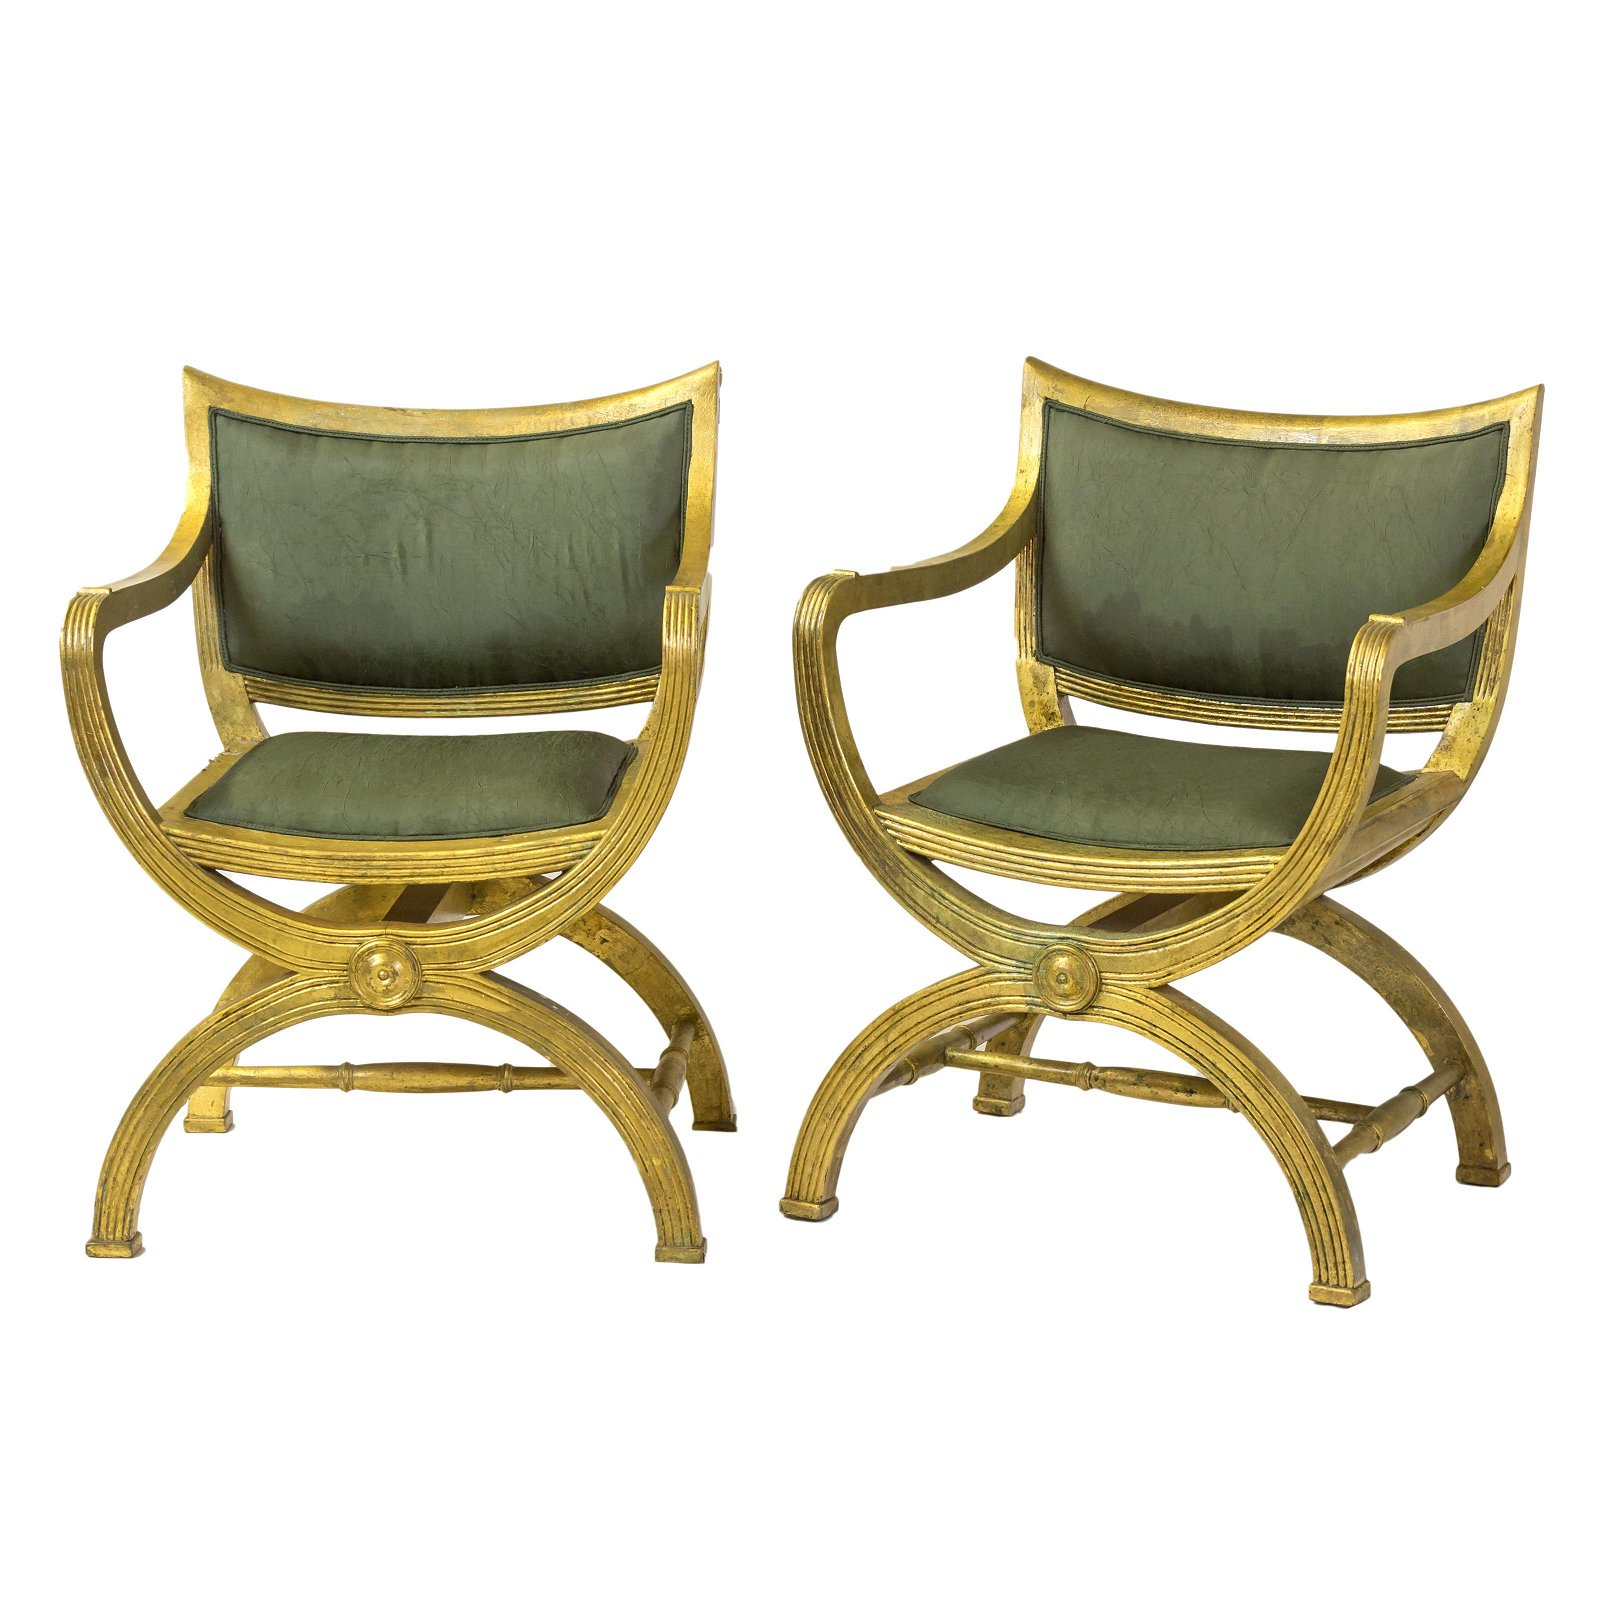 Pair Neoclassical Curule Campaign Chair Armchairs